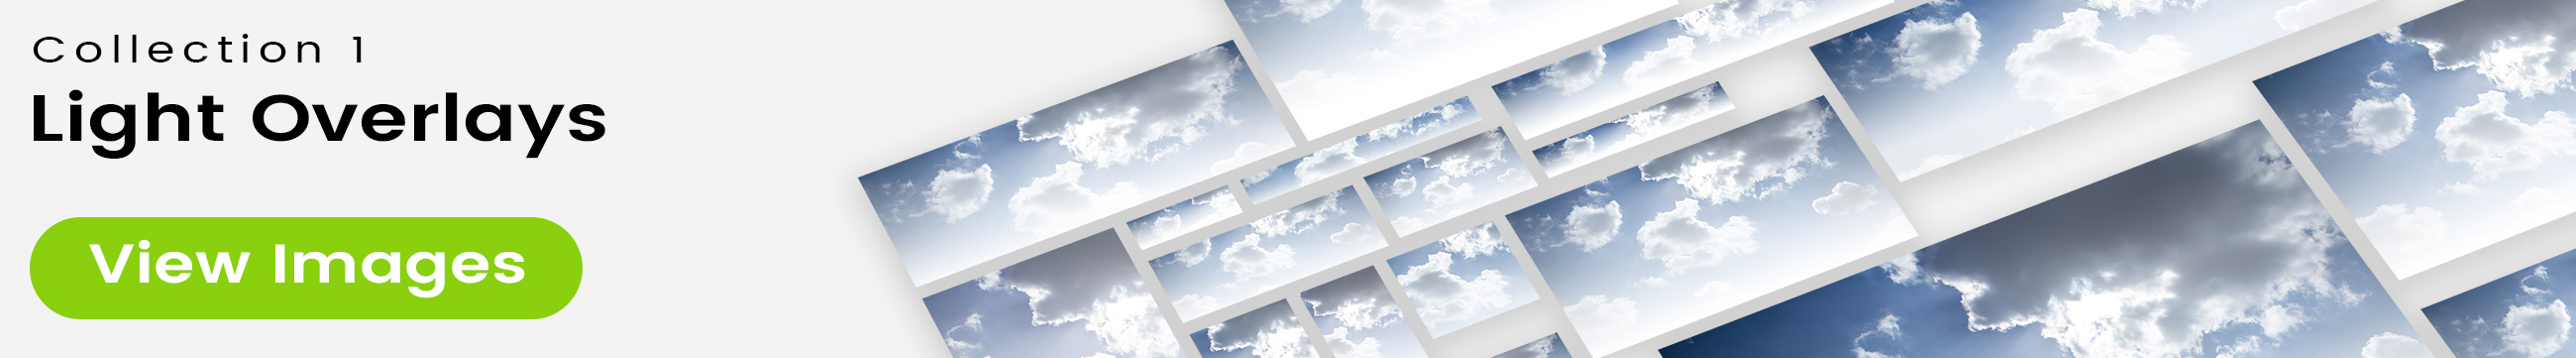 See 25 bonus images included with clouds stock image 9500. Collection 1 of 4 features a light overlay design.